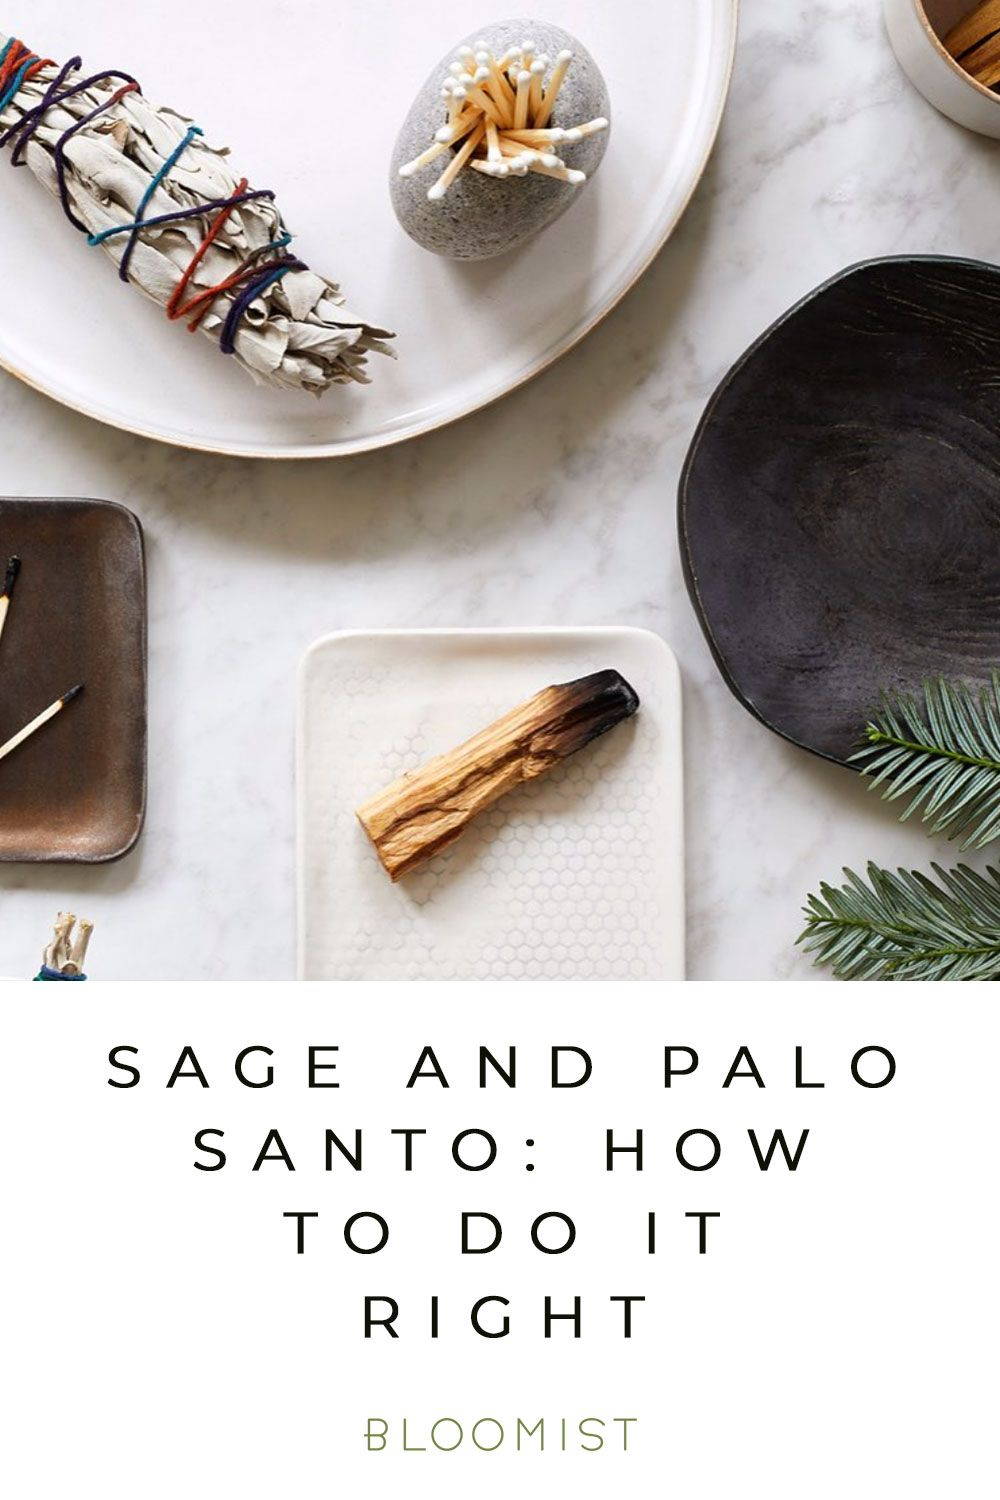 Sage and palo santo Here's how to use organic sage in